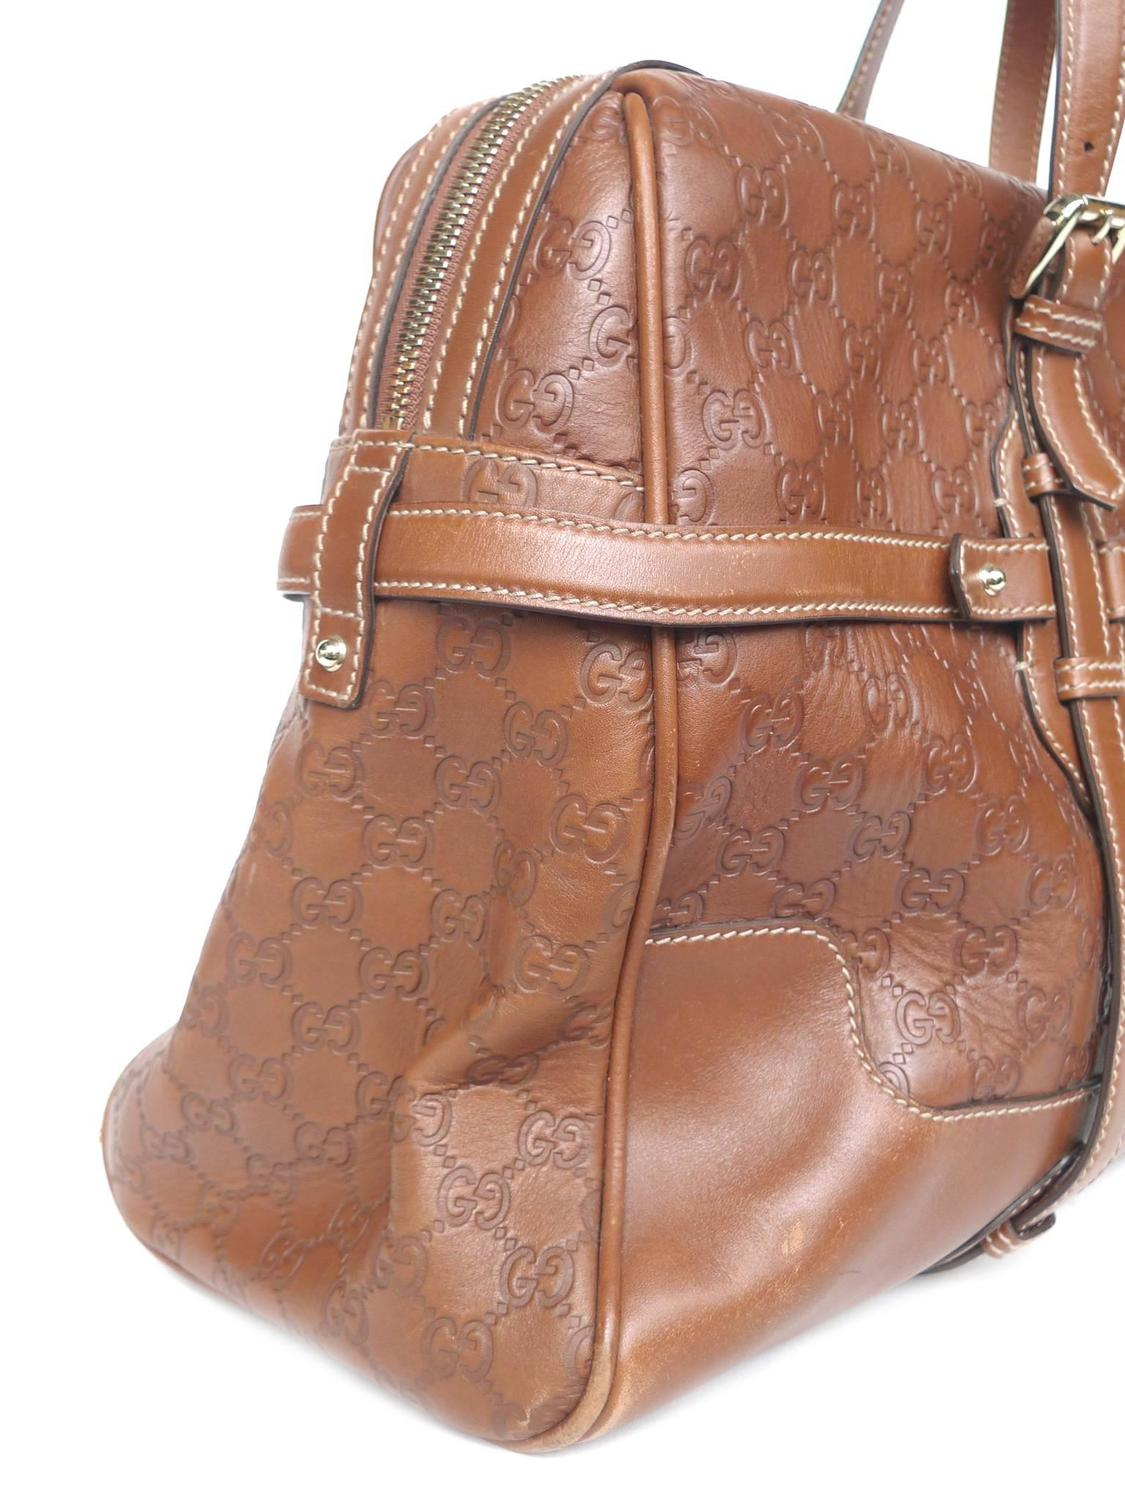 c1e667418ef Gucci 85th Anniversary Brown Leather Horsebit Travel Bag For Sale at 1stdibs